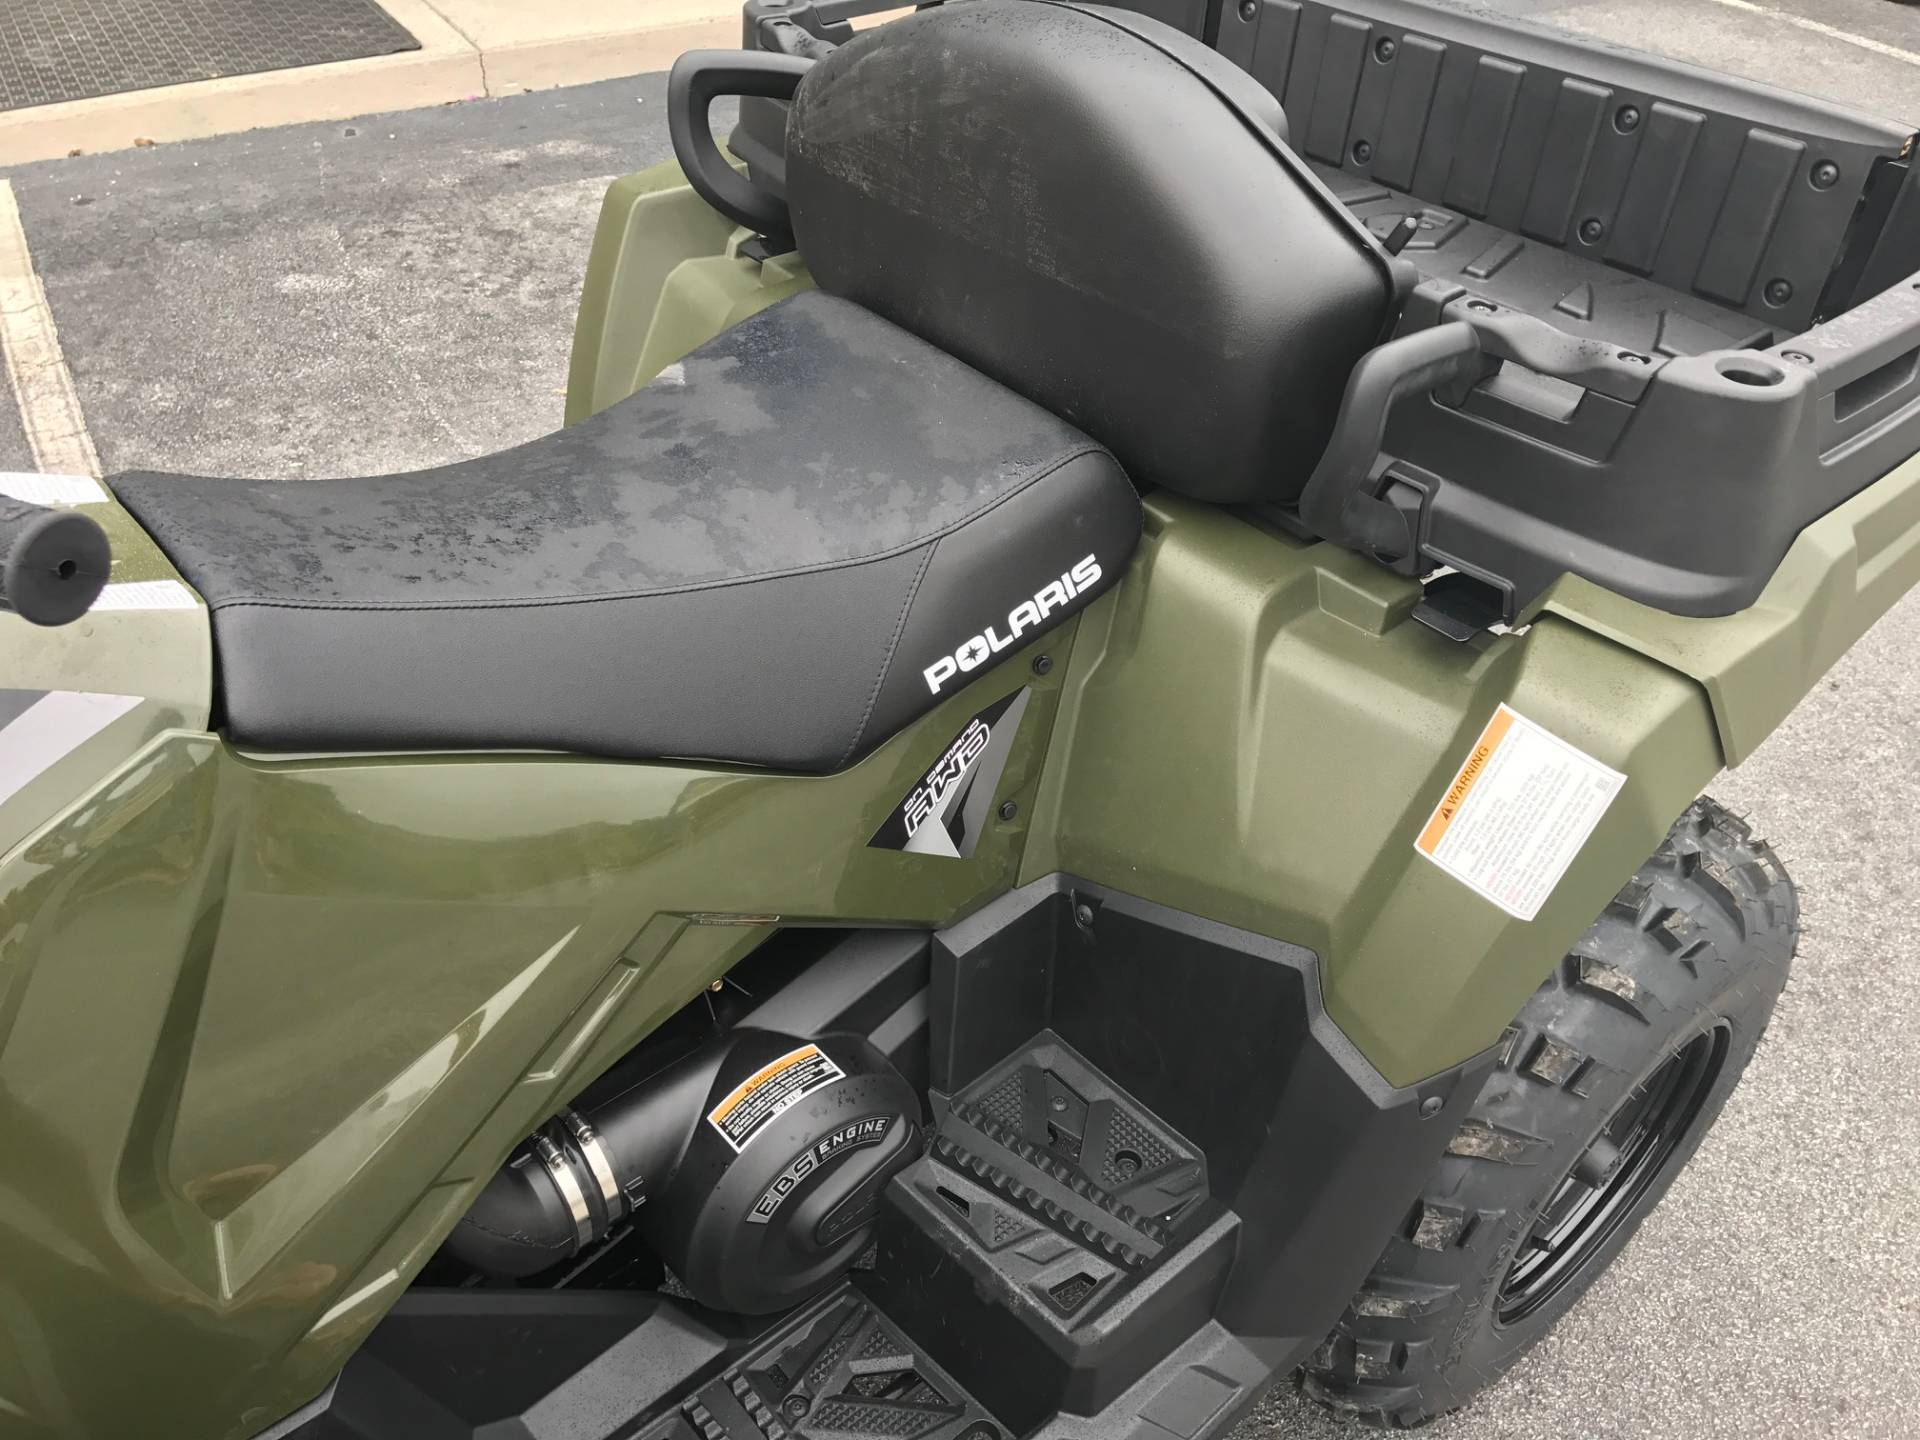 2017 polaris sportsman x2 570 eps atvs greenville north carolina 2017 polaris sportsman x2 570 eps in greenville north carolina publicscrutiny Images